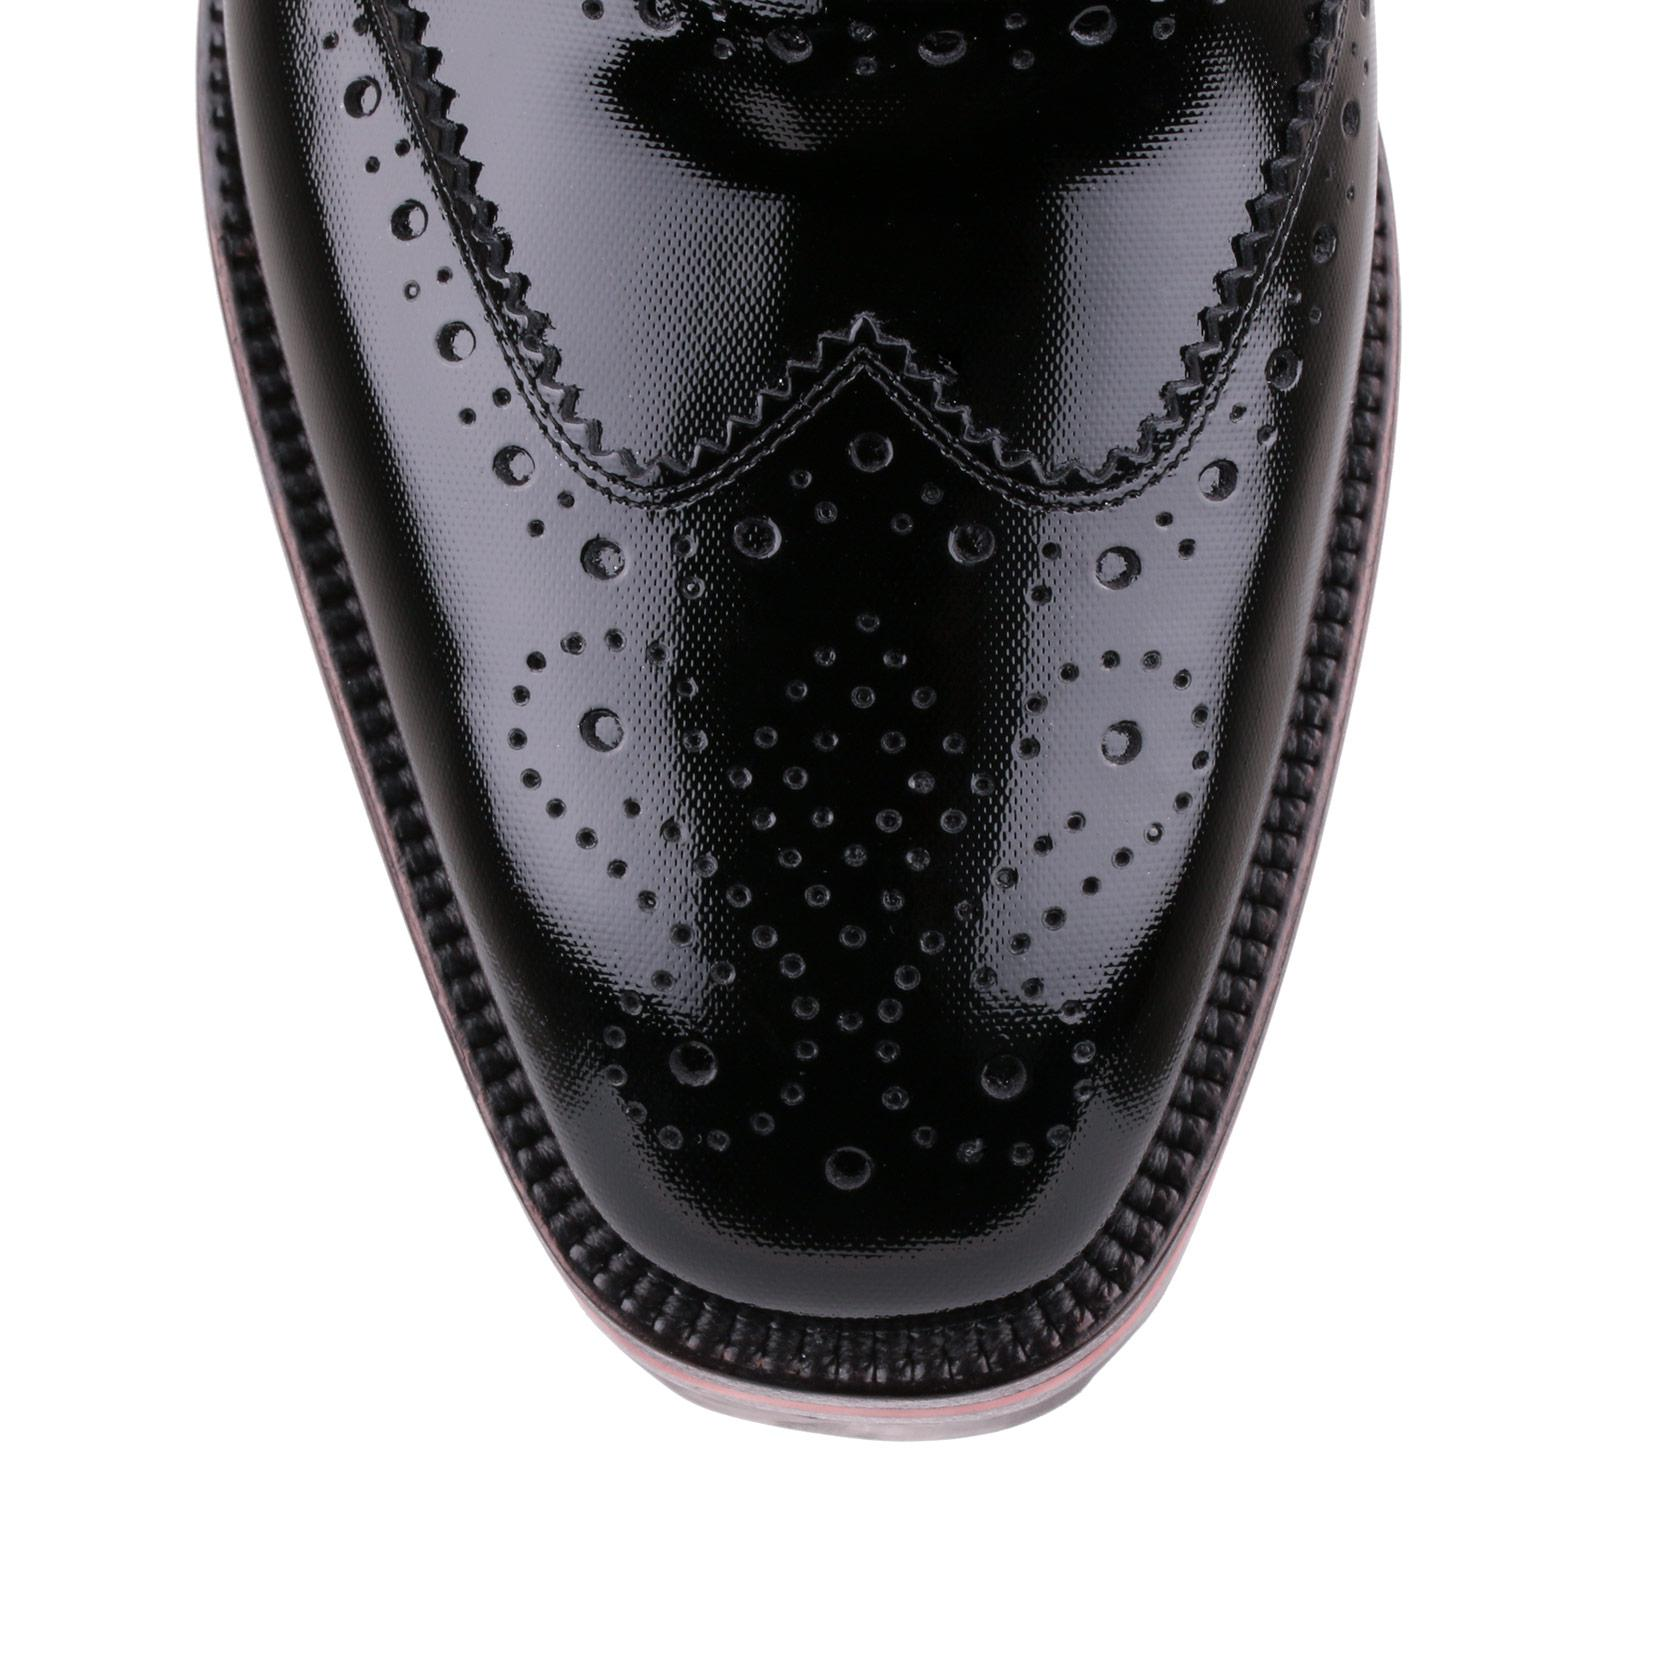 83c8f5af11e4 Lyst - Christian Louboutin Charletta Black Patent Broque in Black ...